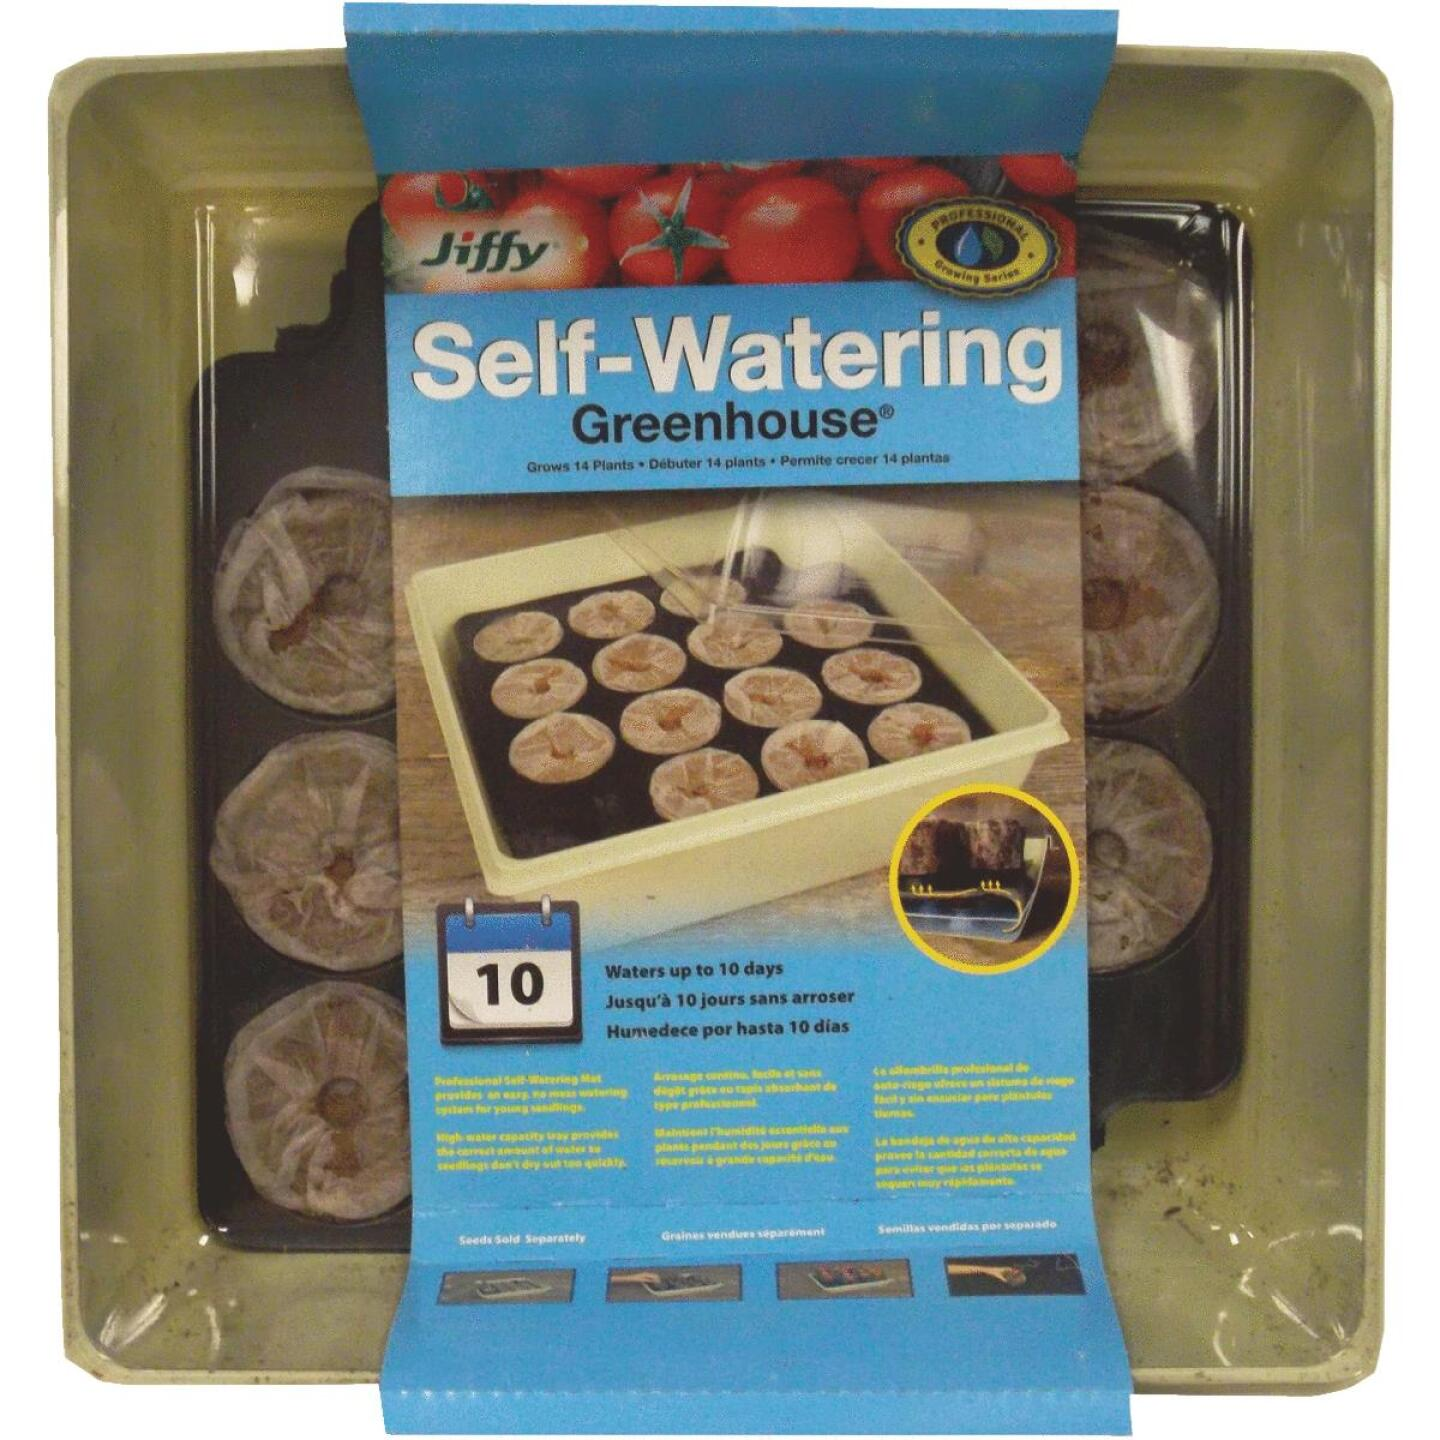 Jiffy 14-Cell Self-Watering Greenhouse Seed Starter Kit Image 1